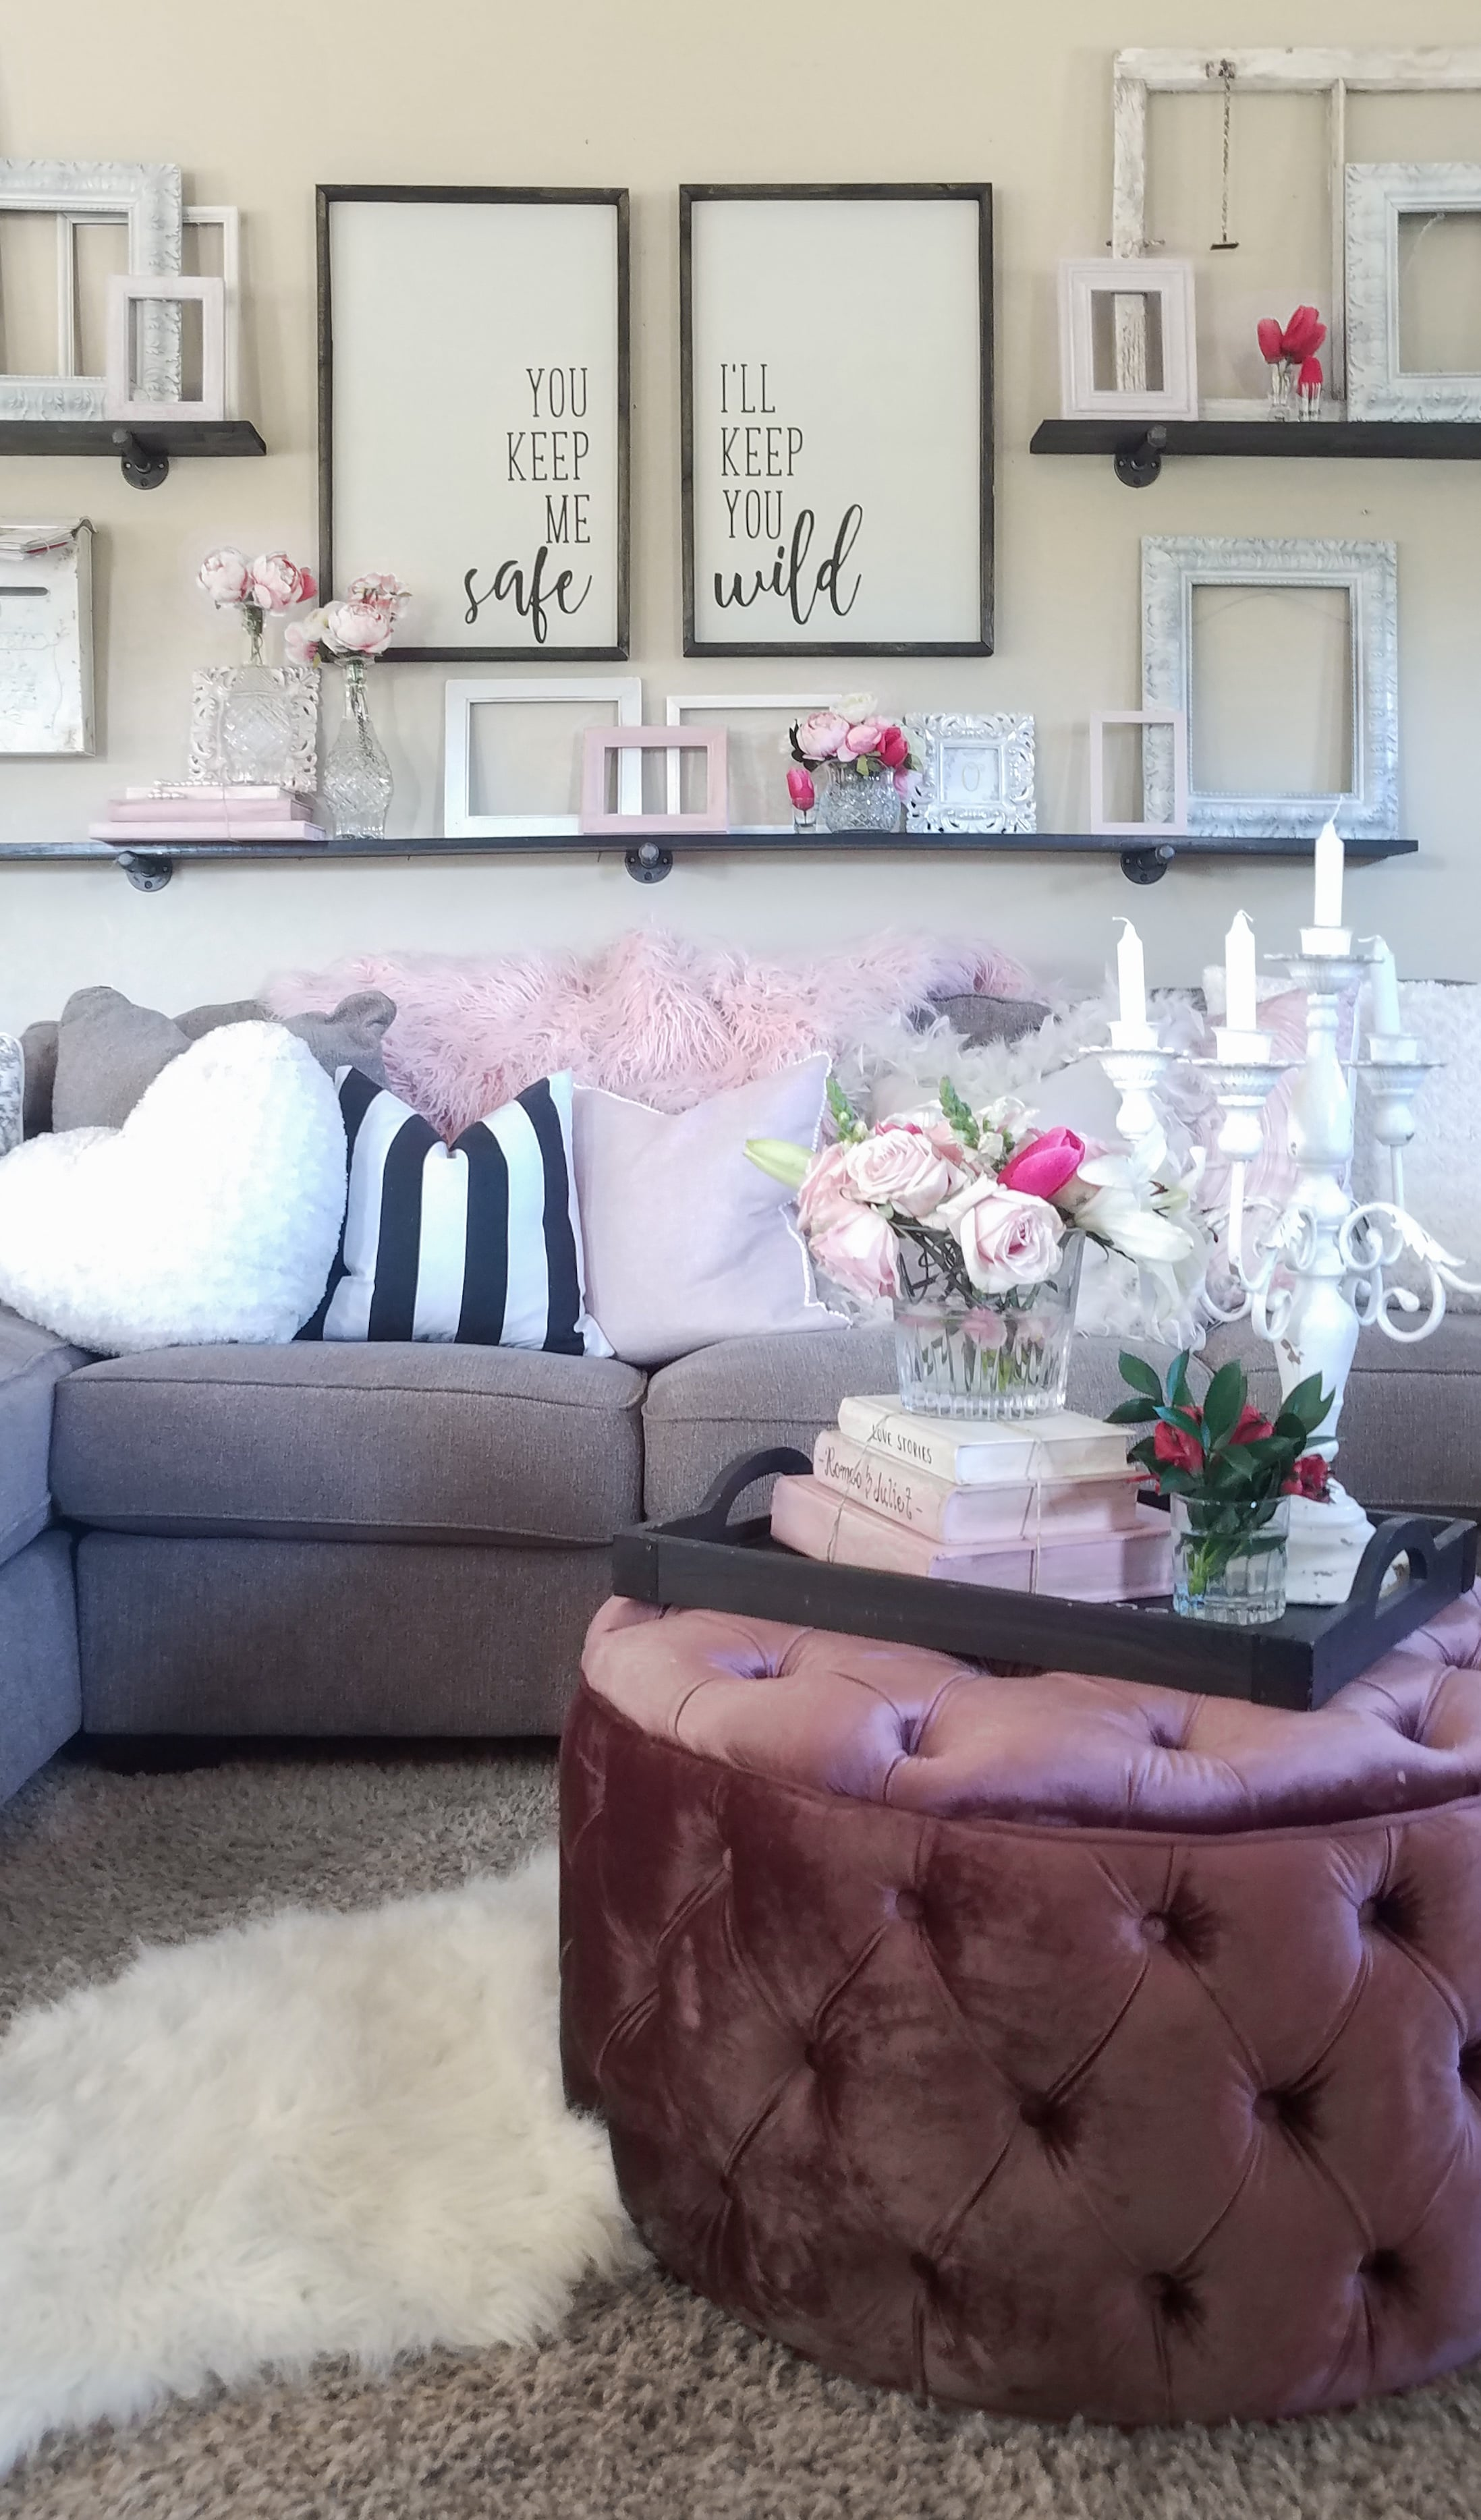 Candelabra and other decor